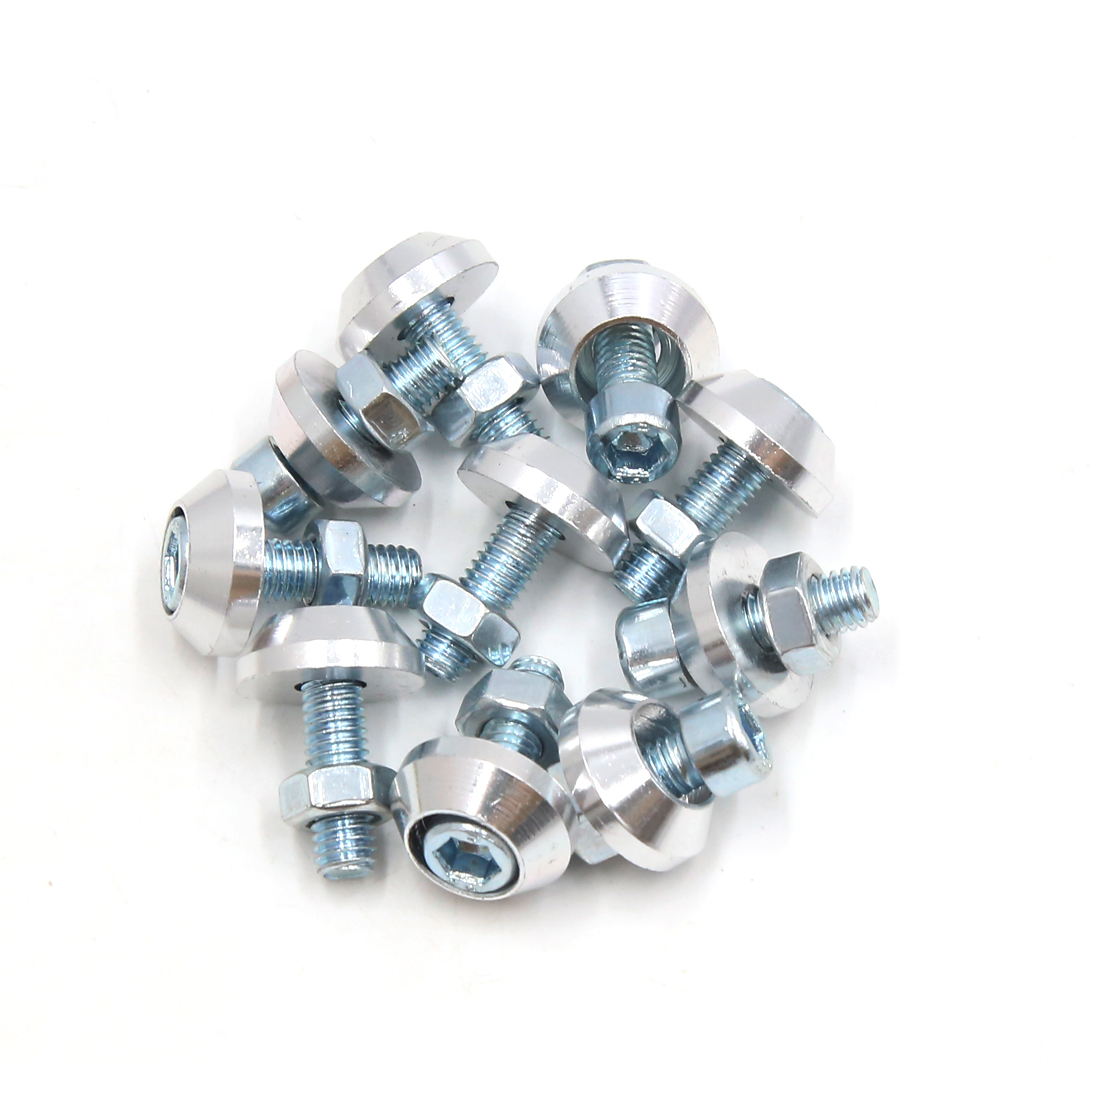 10pcs Silver Tone Aluminum Alloy Scooter Motorcycle License Plate Bolts Screws